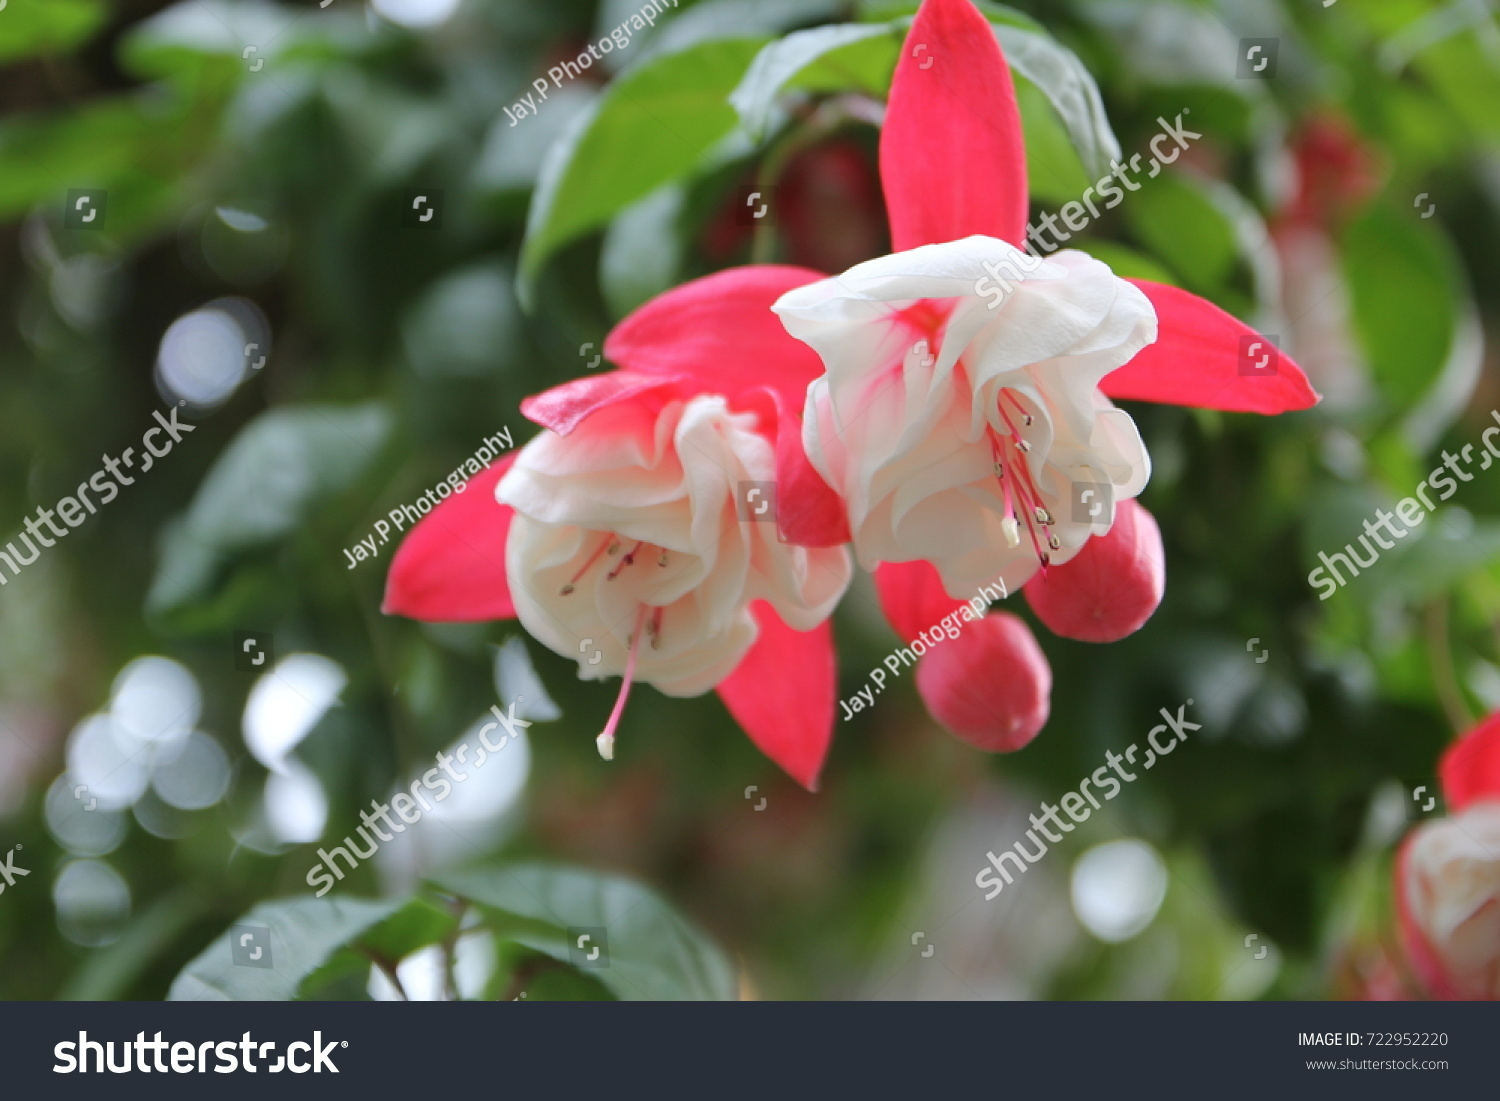 One most beautiful flowers begonia garden stock photo edit now one of the most beautiful flowers in begonia garden of nabana no sato flower park in izmirmasajfo